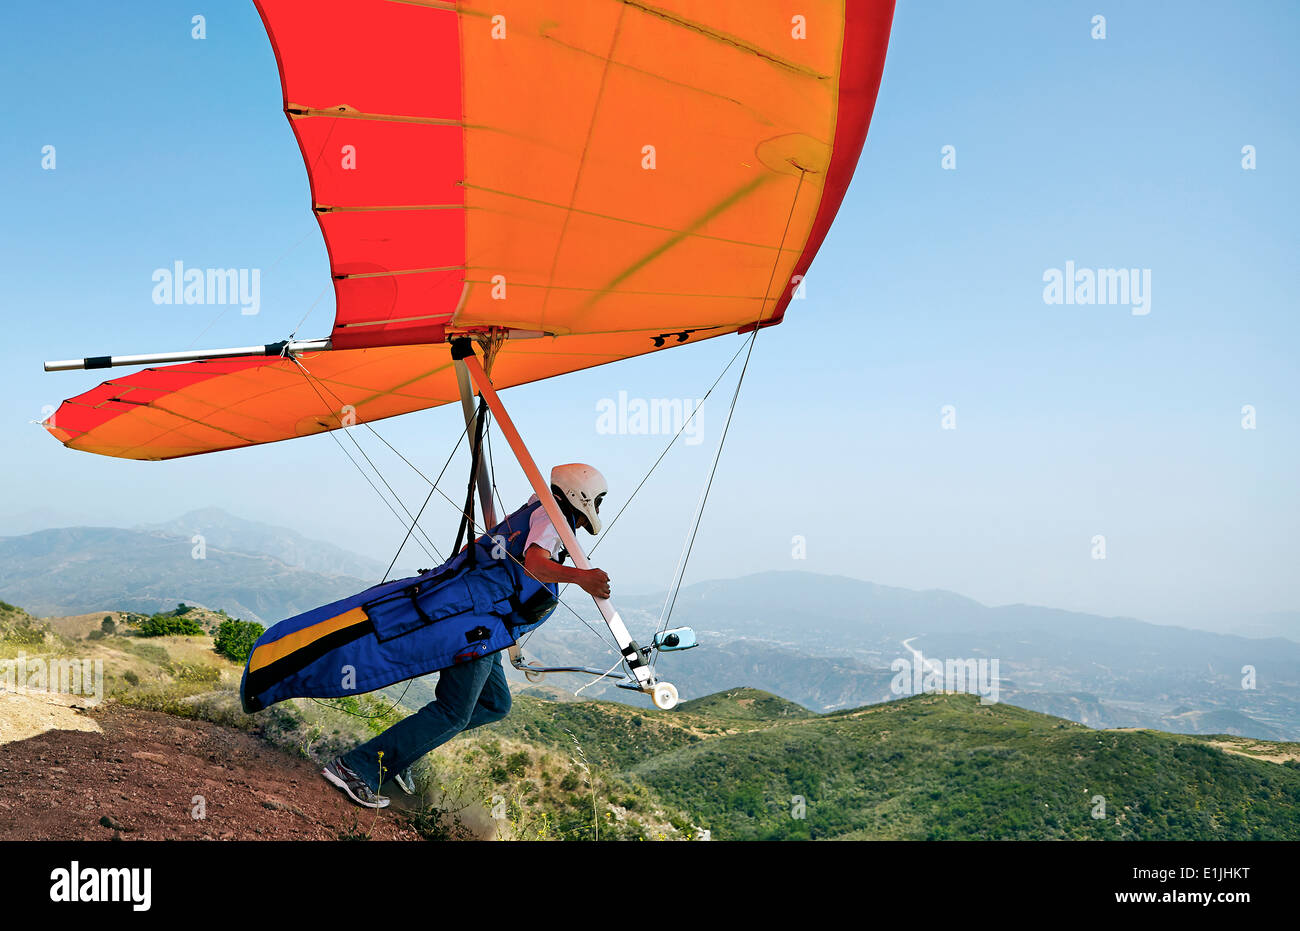 Hang glider pilot taking off - Stock Image